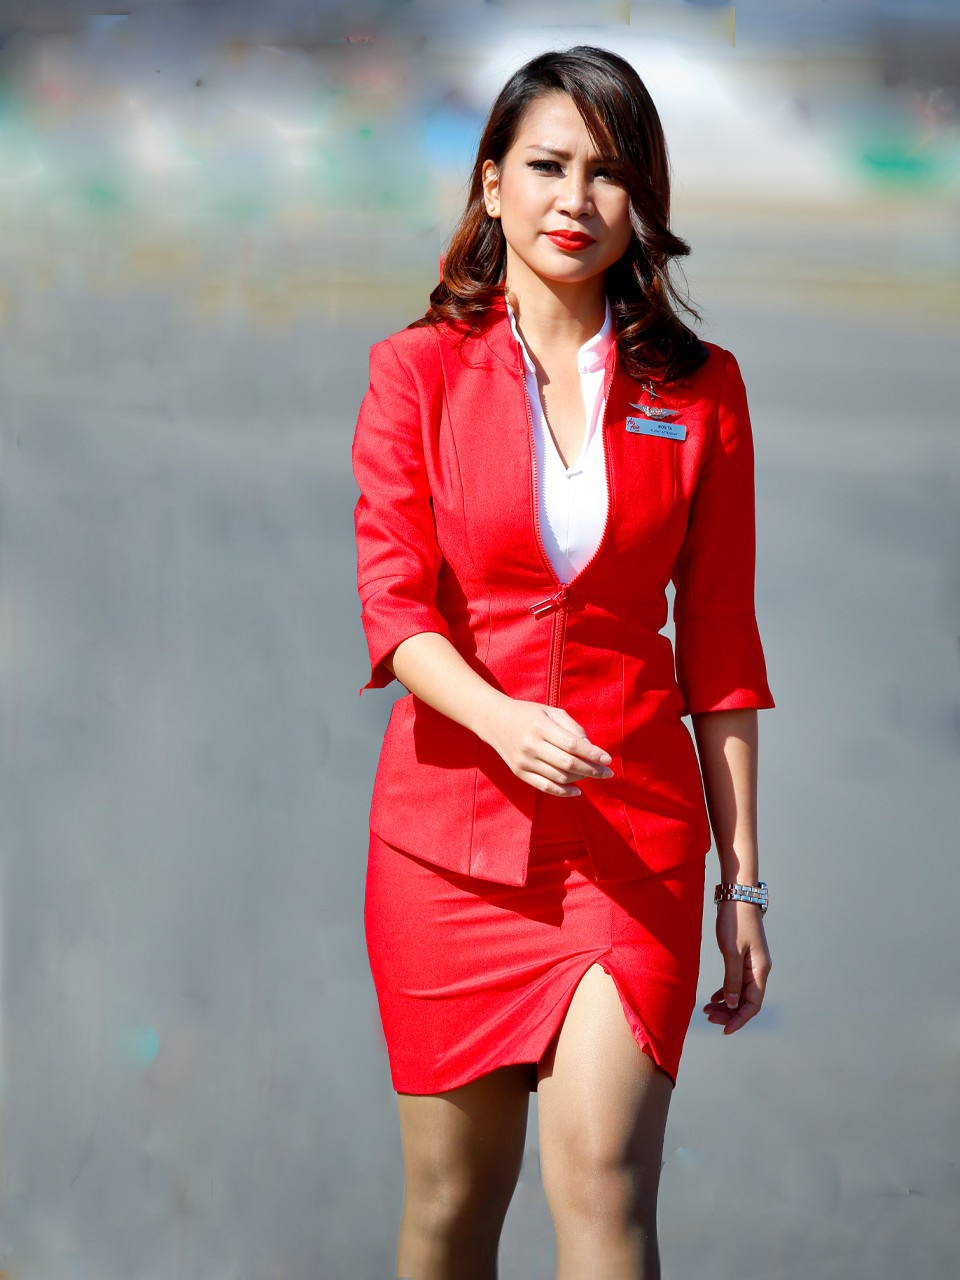 Senator Abdullah Mat Yasim, a division chief of the ruling Umno party, said in Parliament the fitted attire of AirAsia's and Firefly's female flight attendants can 'arouse passengers', the New Straits Times reported.